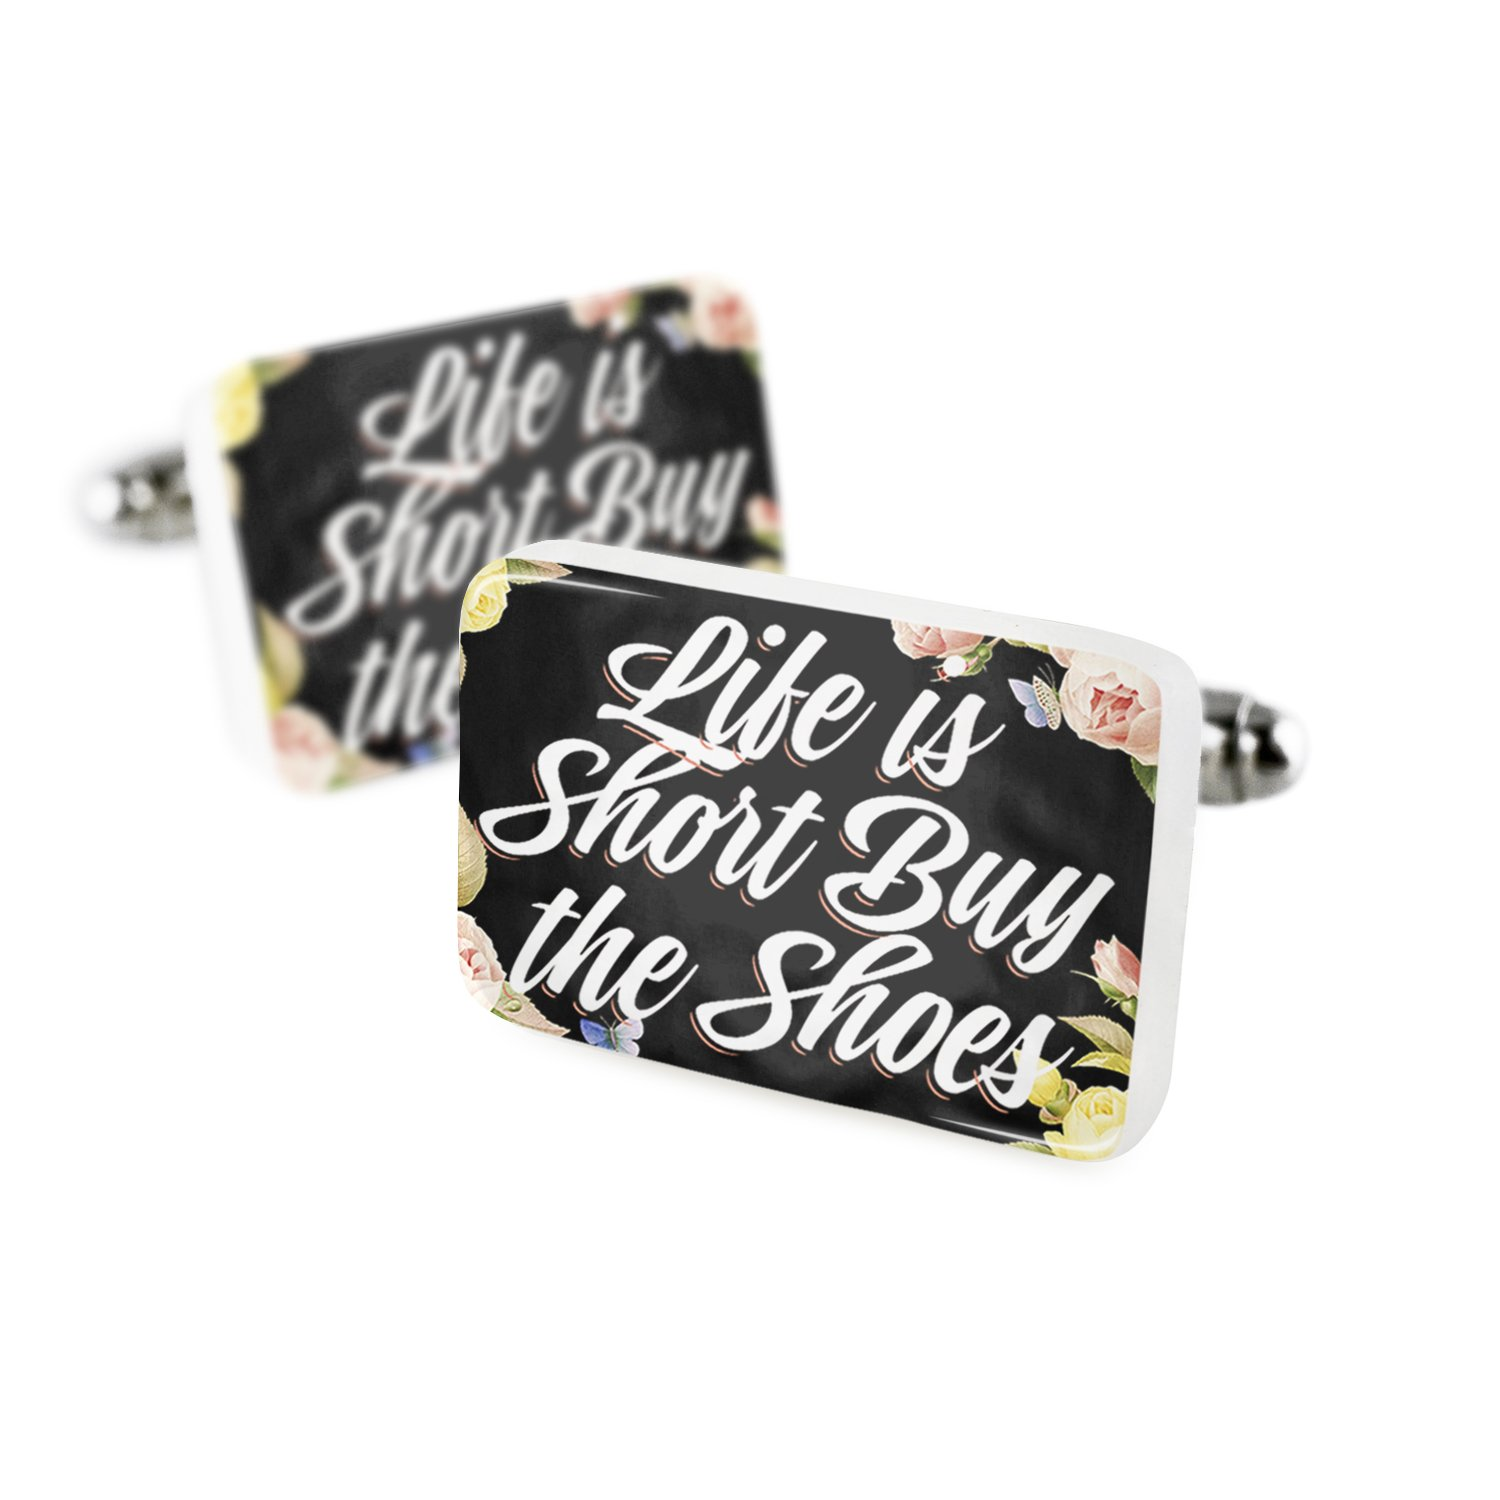 Cufflinks Floral Border Life is Short Buy the Shoes Porcelain Ceramic NEONBLOND